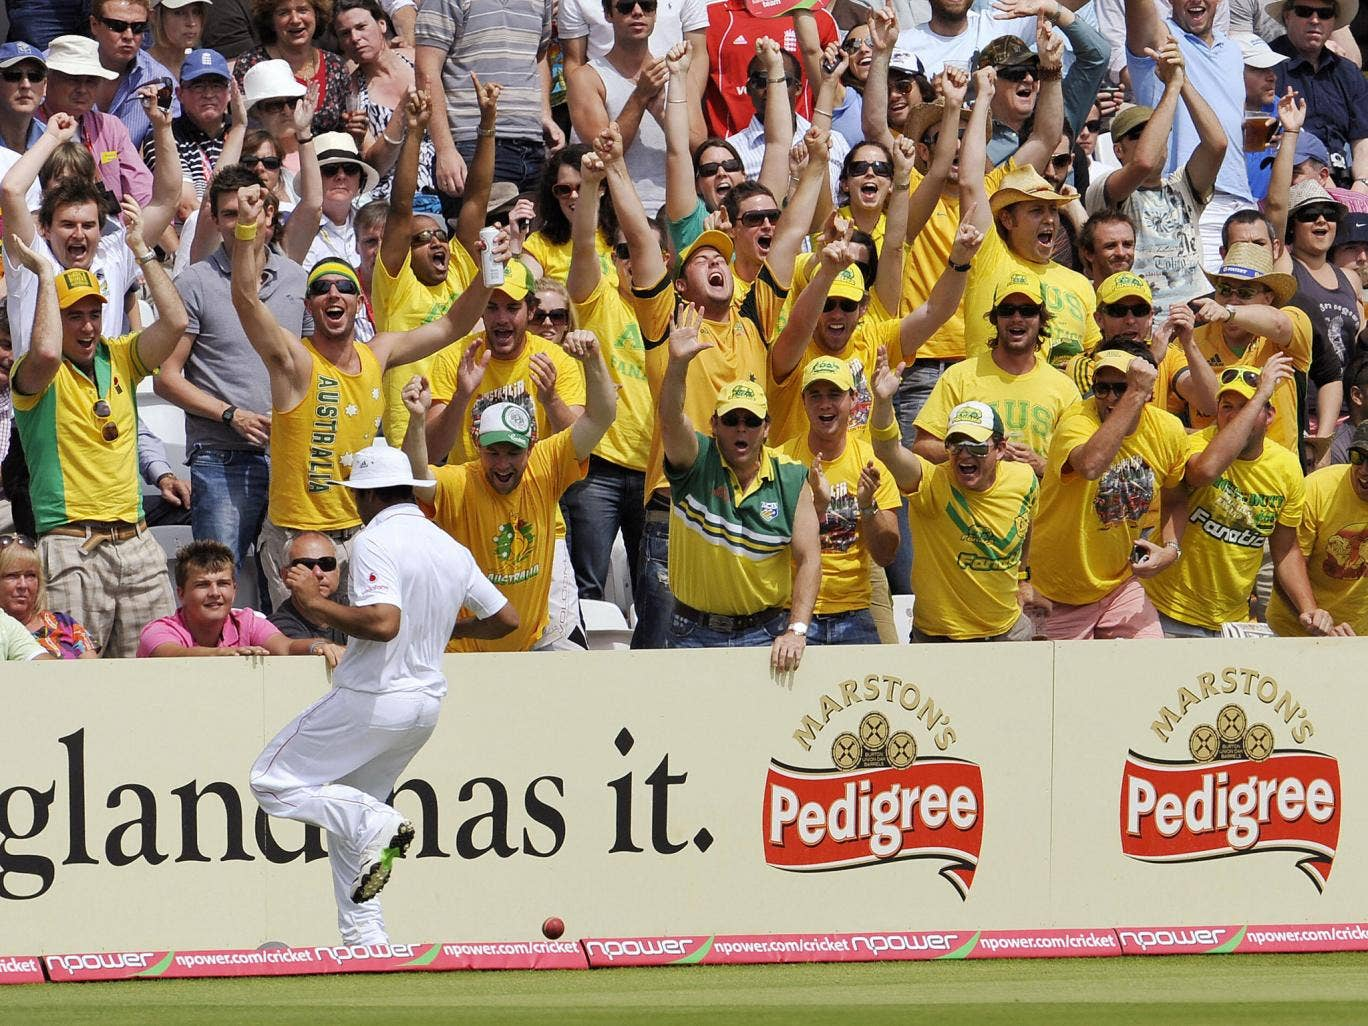 Australian cricket fans during a Test match at Lord's